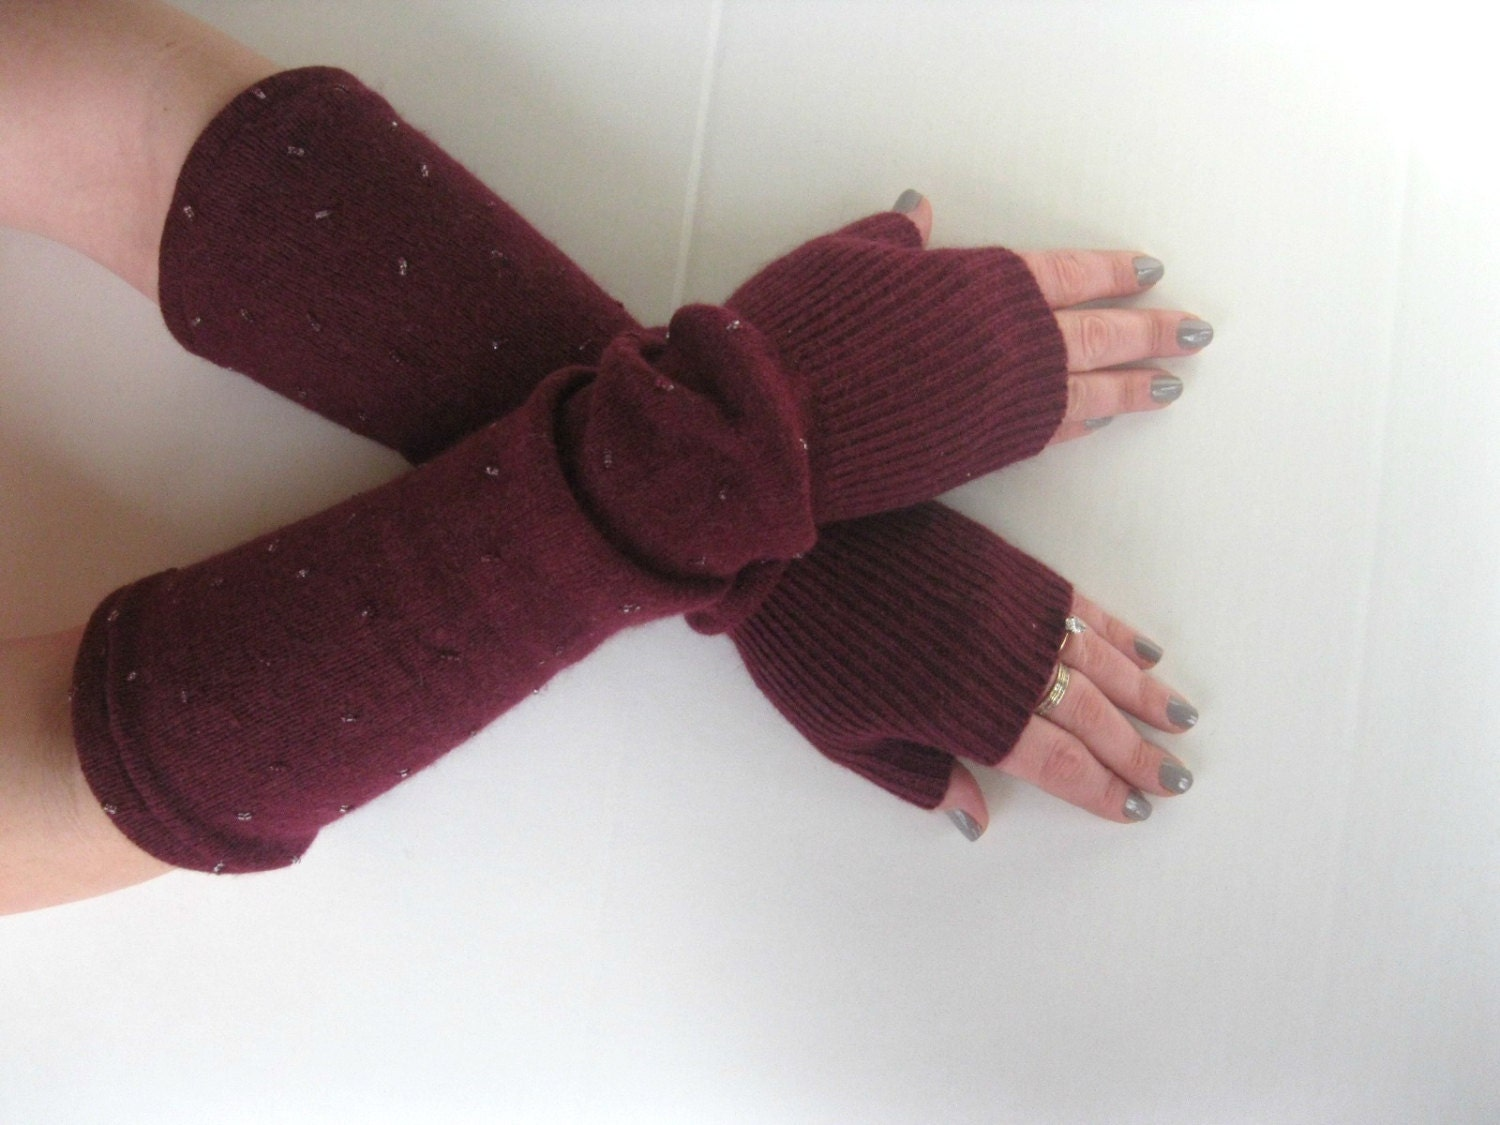 Beaded Wool Fingerless Gloves - Angora Wool Blend in Oxblood Burgundy Texting Gloves Arm Warmers : Upcycled Recycled Repurposed Eco Friendly - SewEcological